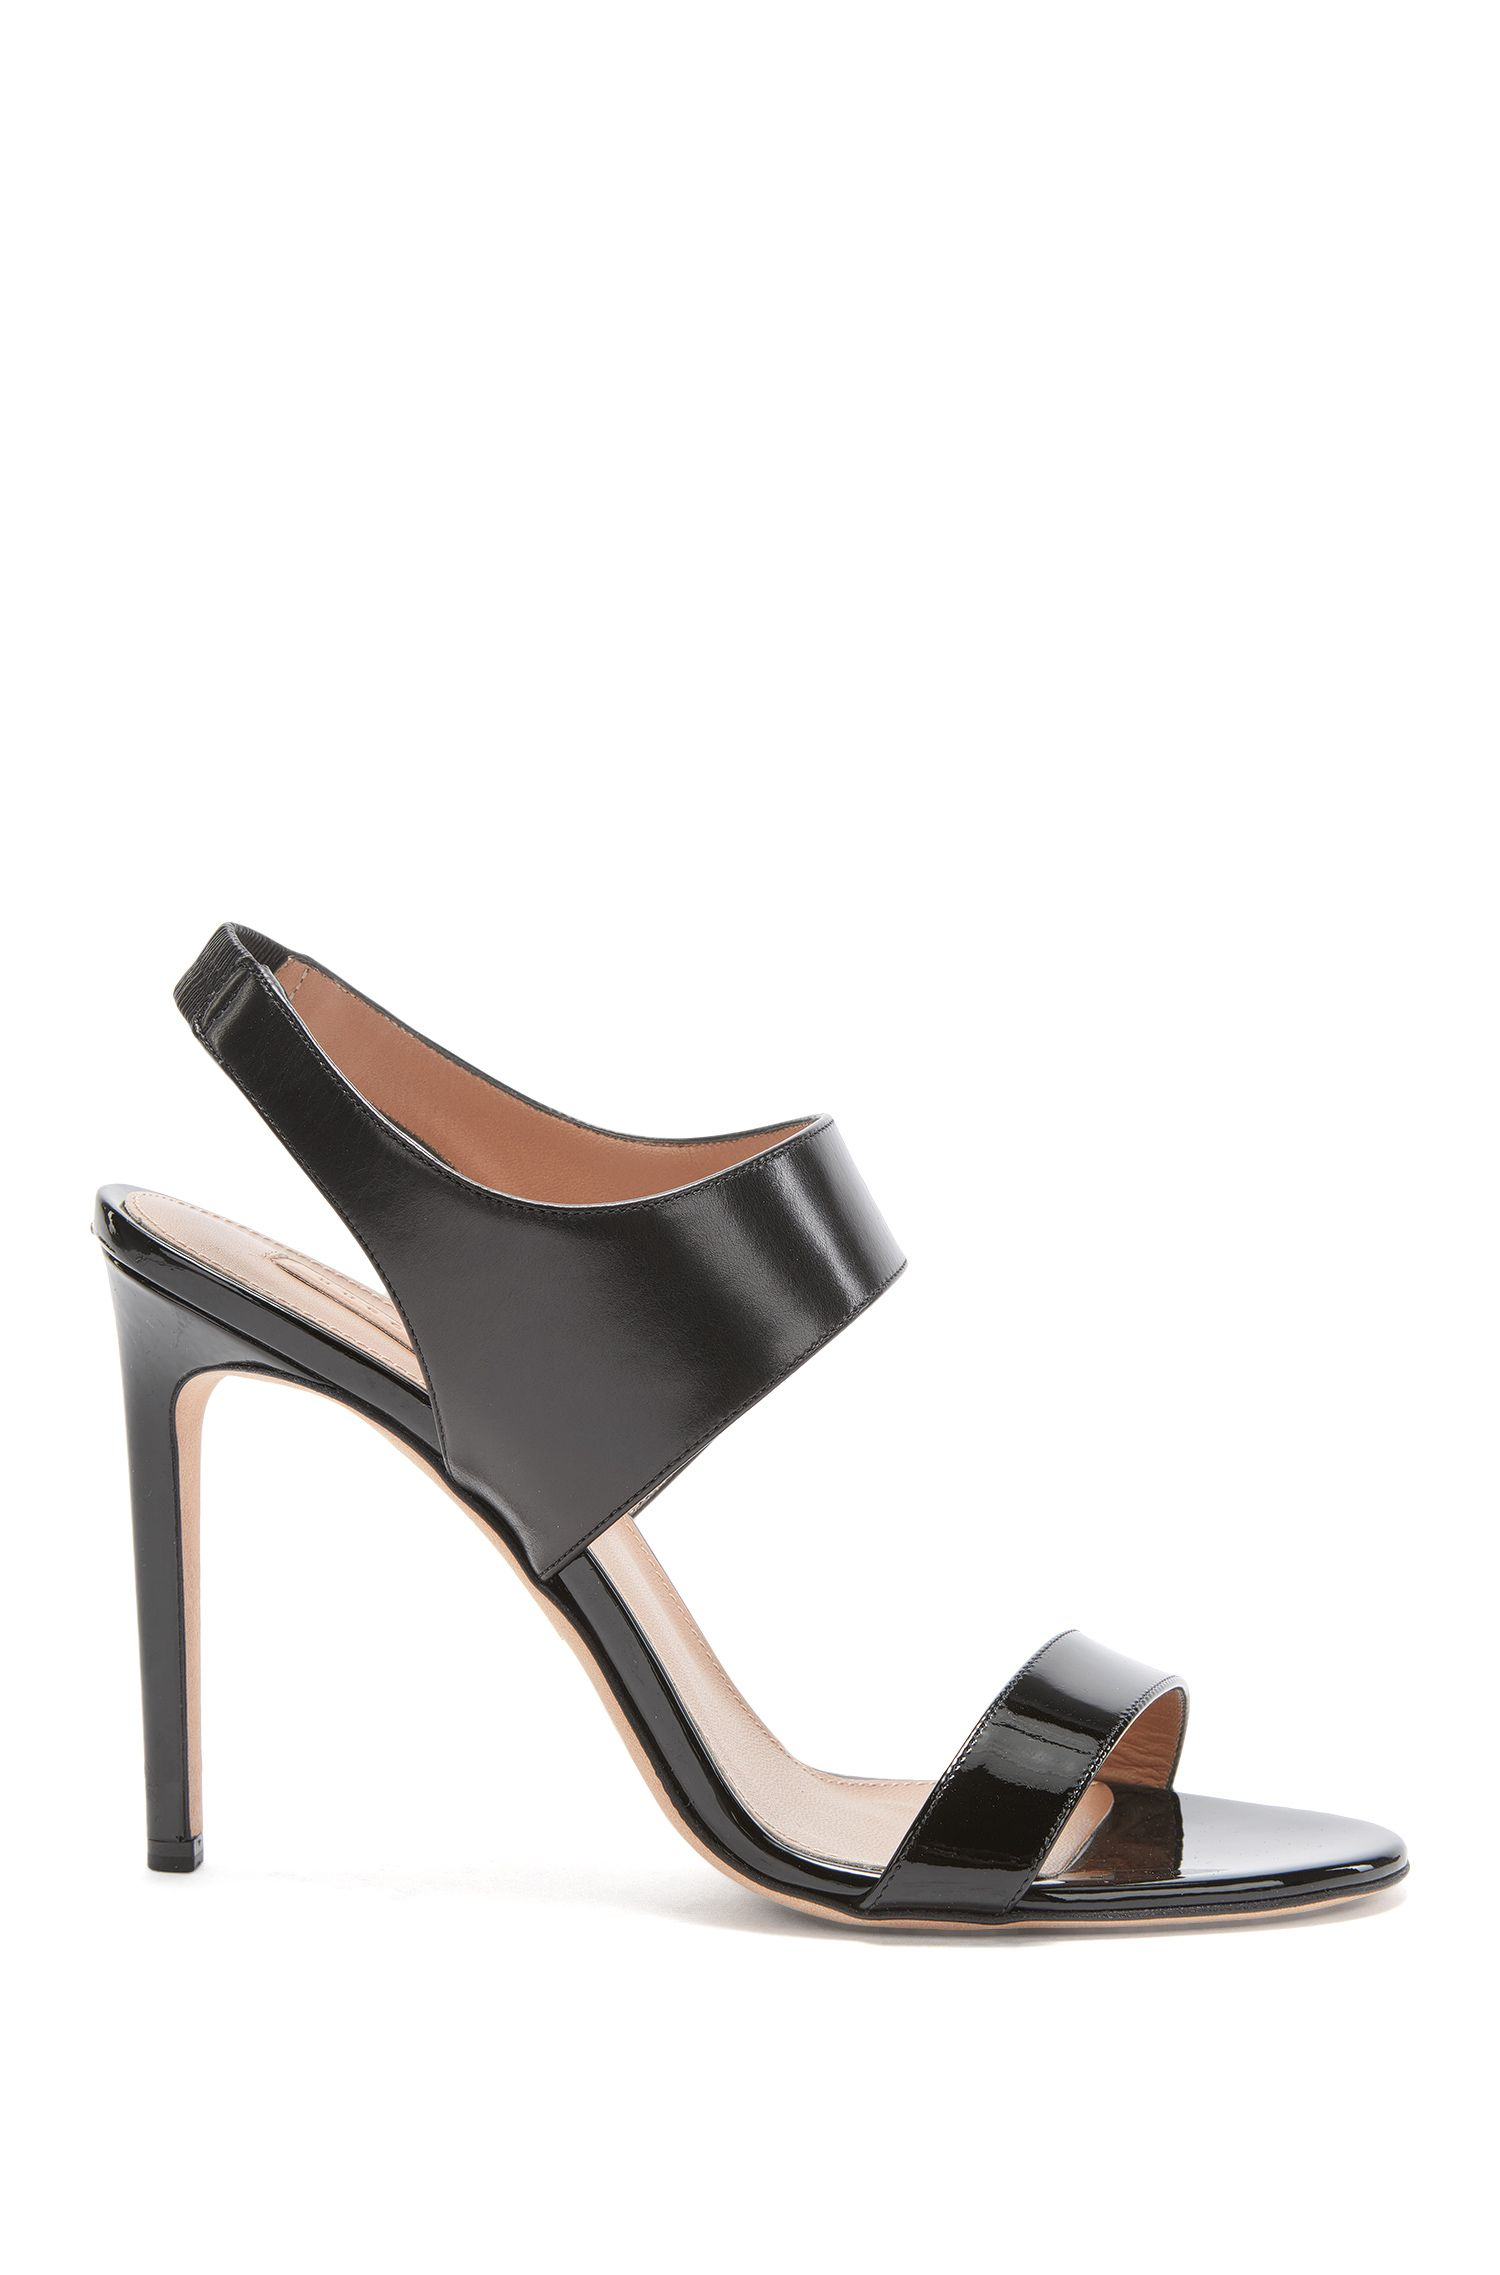 BOSS Luxury Staple sandals in rich Italian leather